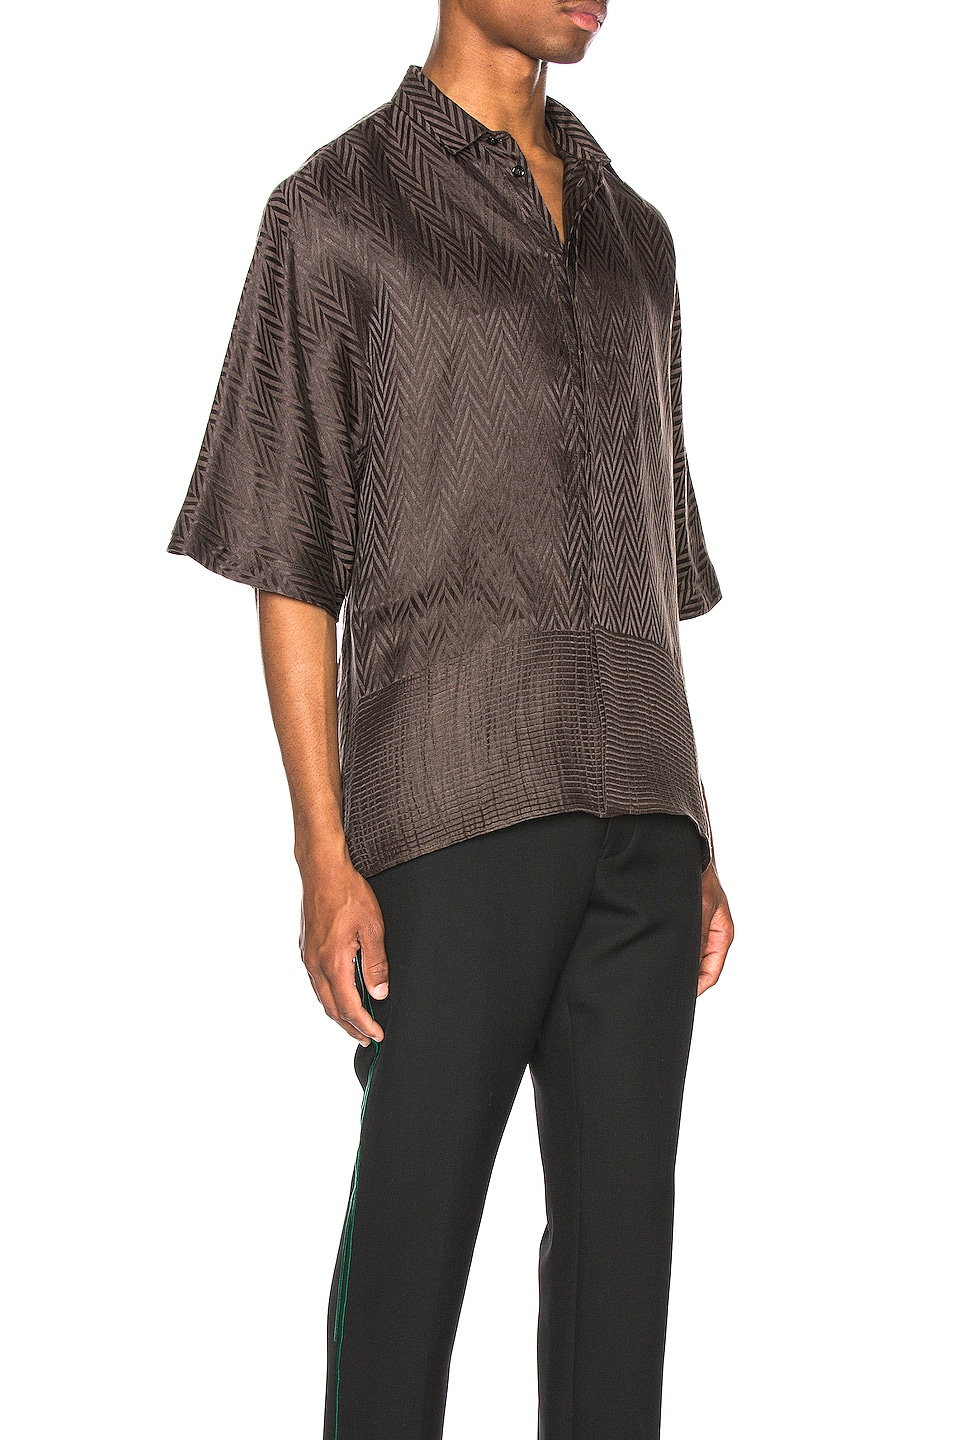 Image 2 of Haider Ackermann Kimono Shirt in Athenaes Brown